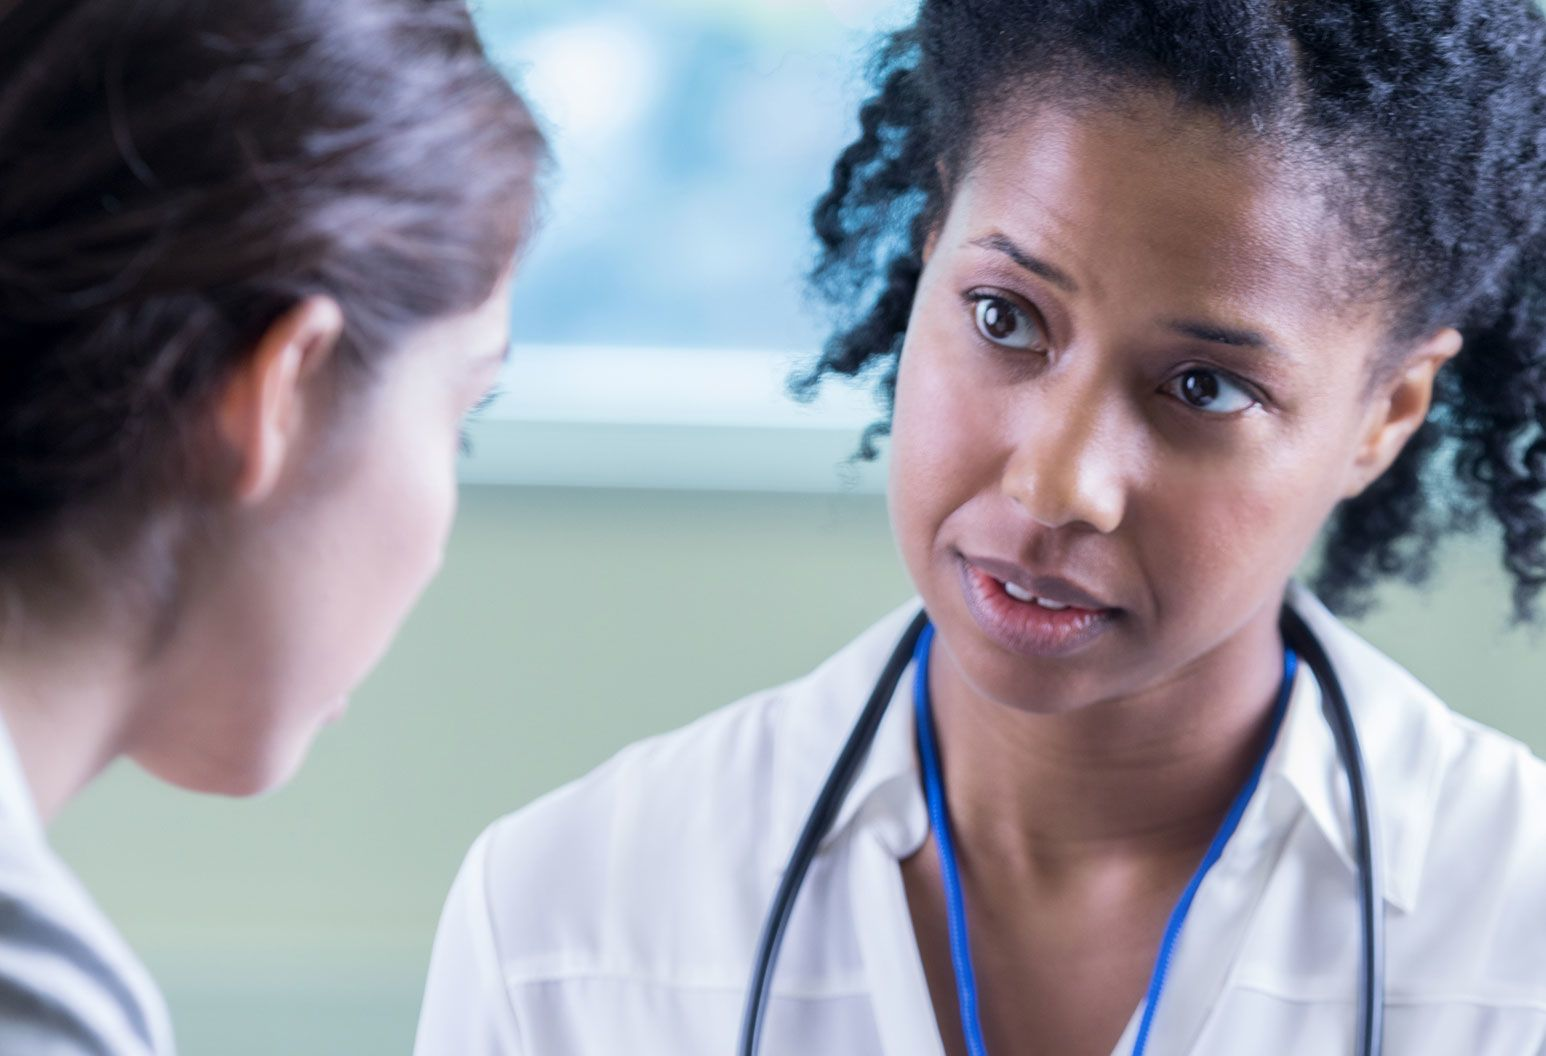 female physician looks sympathetic as she listens to patient